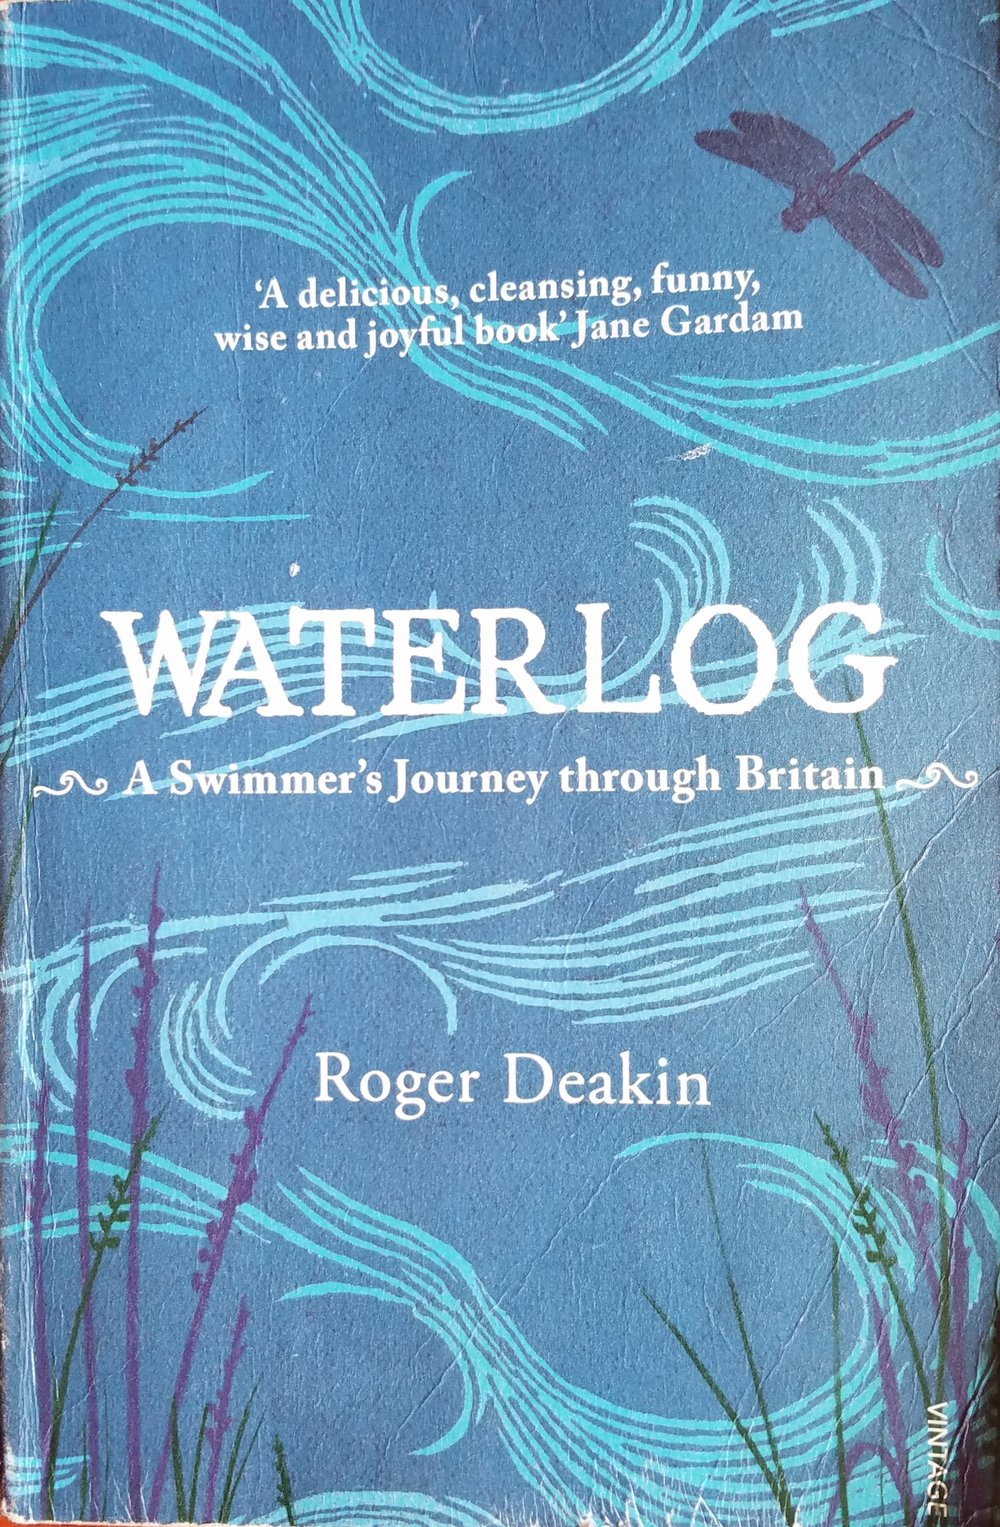 """Published in 1999, this book has lead to wave of """"wild swimming"""" as a popular pastime and subject for a collection of natural history books you'll want to pack with your bathing suit and towel wherever you go."""